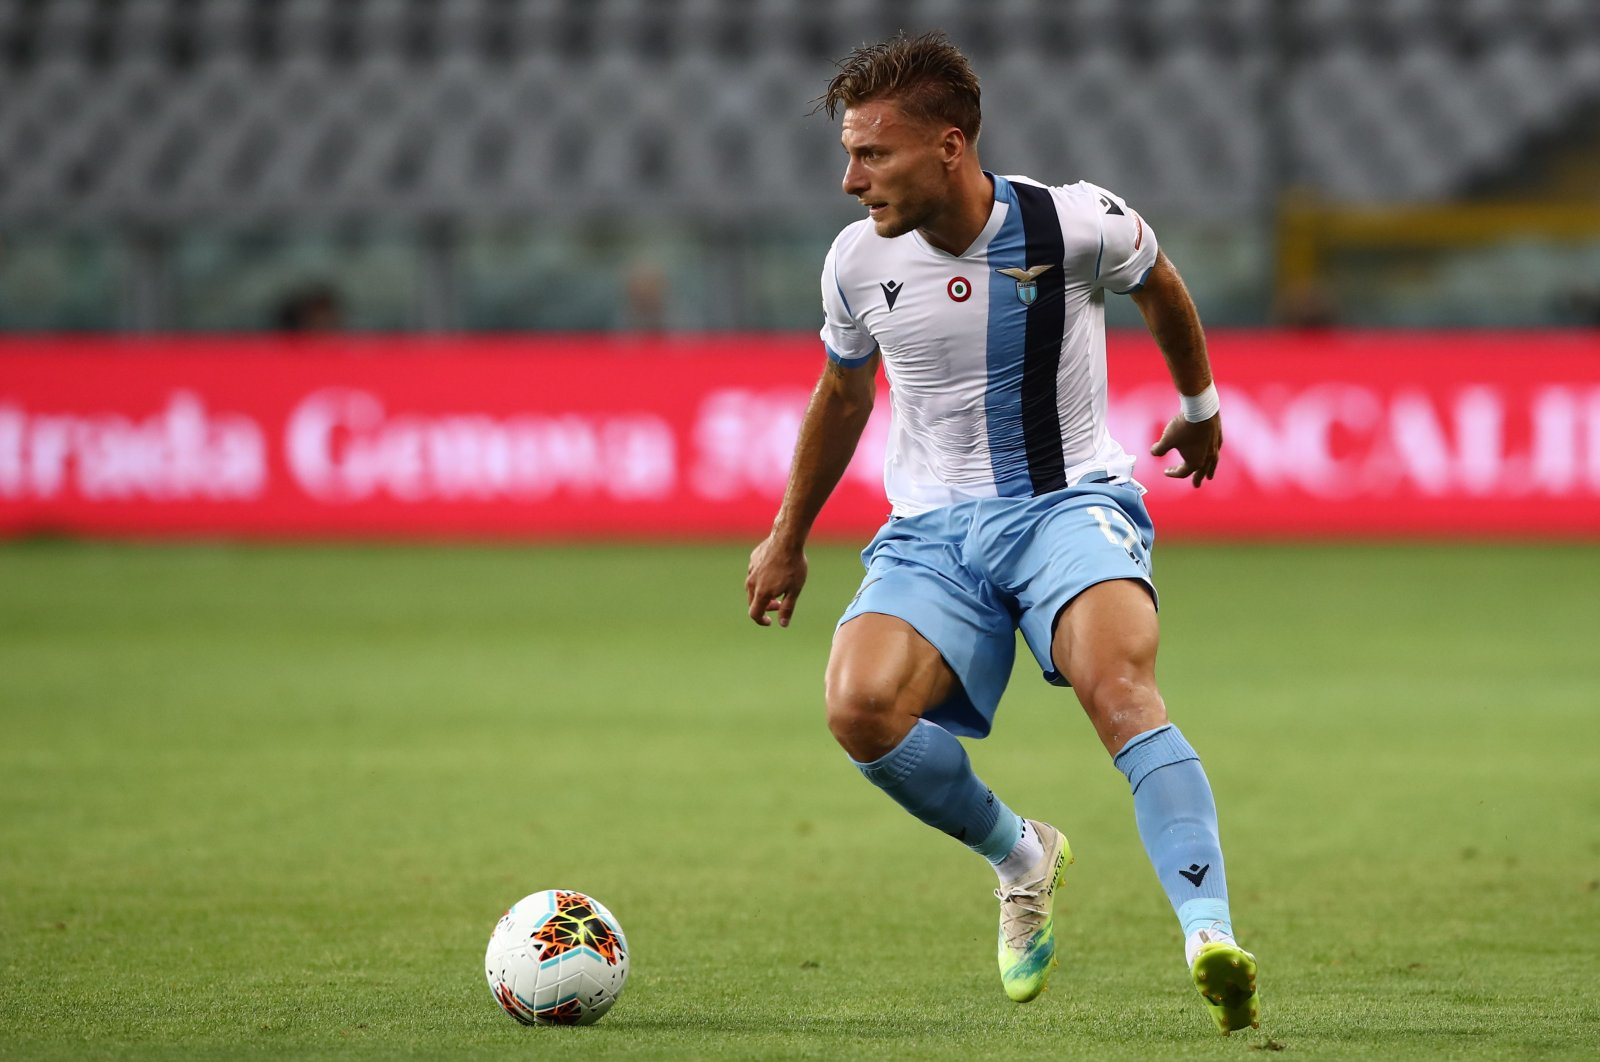 Lazio's Ciro Immobile controls the ball during a Serie A match in Turin, Italy, June 30, 2020. (AFP Photo)